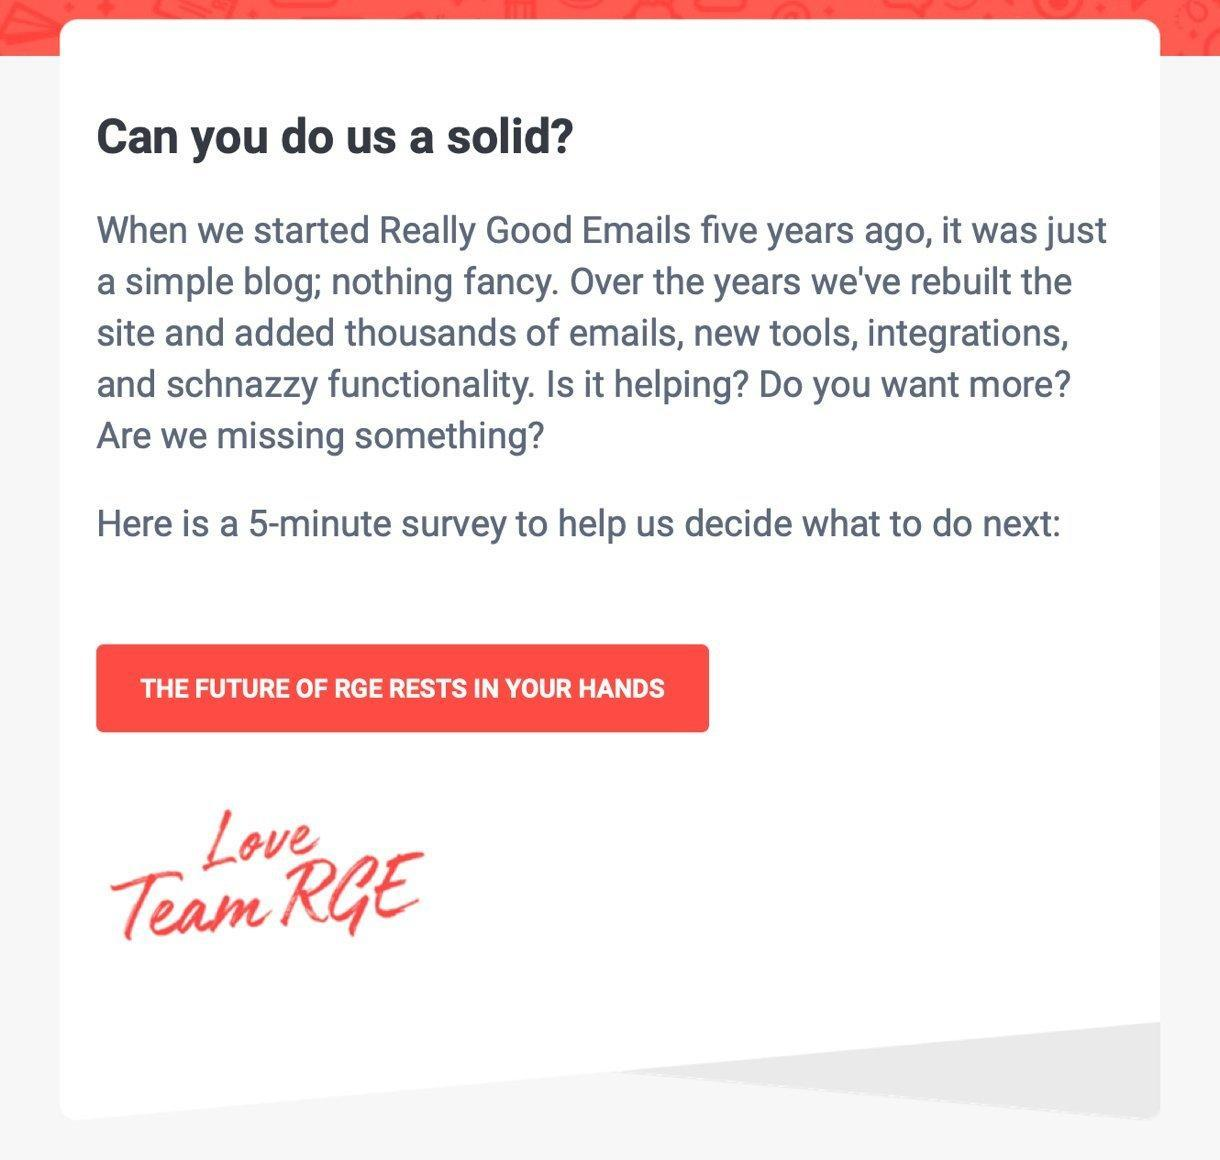 Really Good Emails survey email example